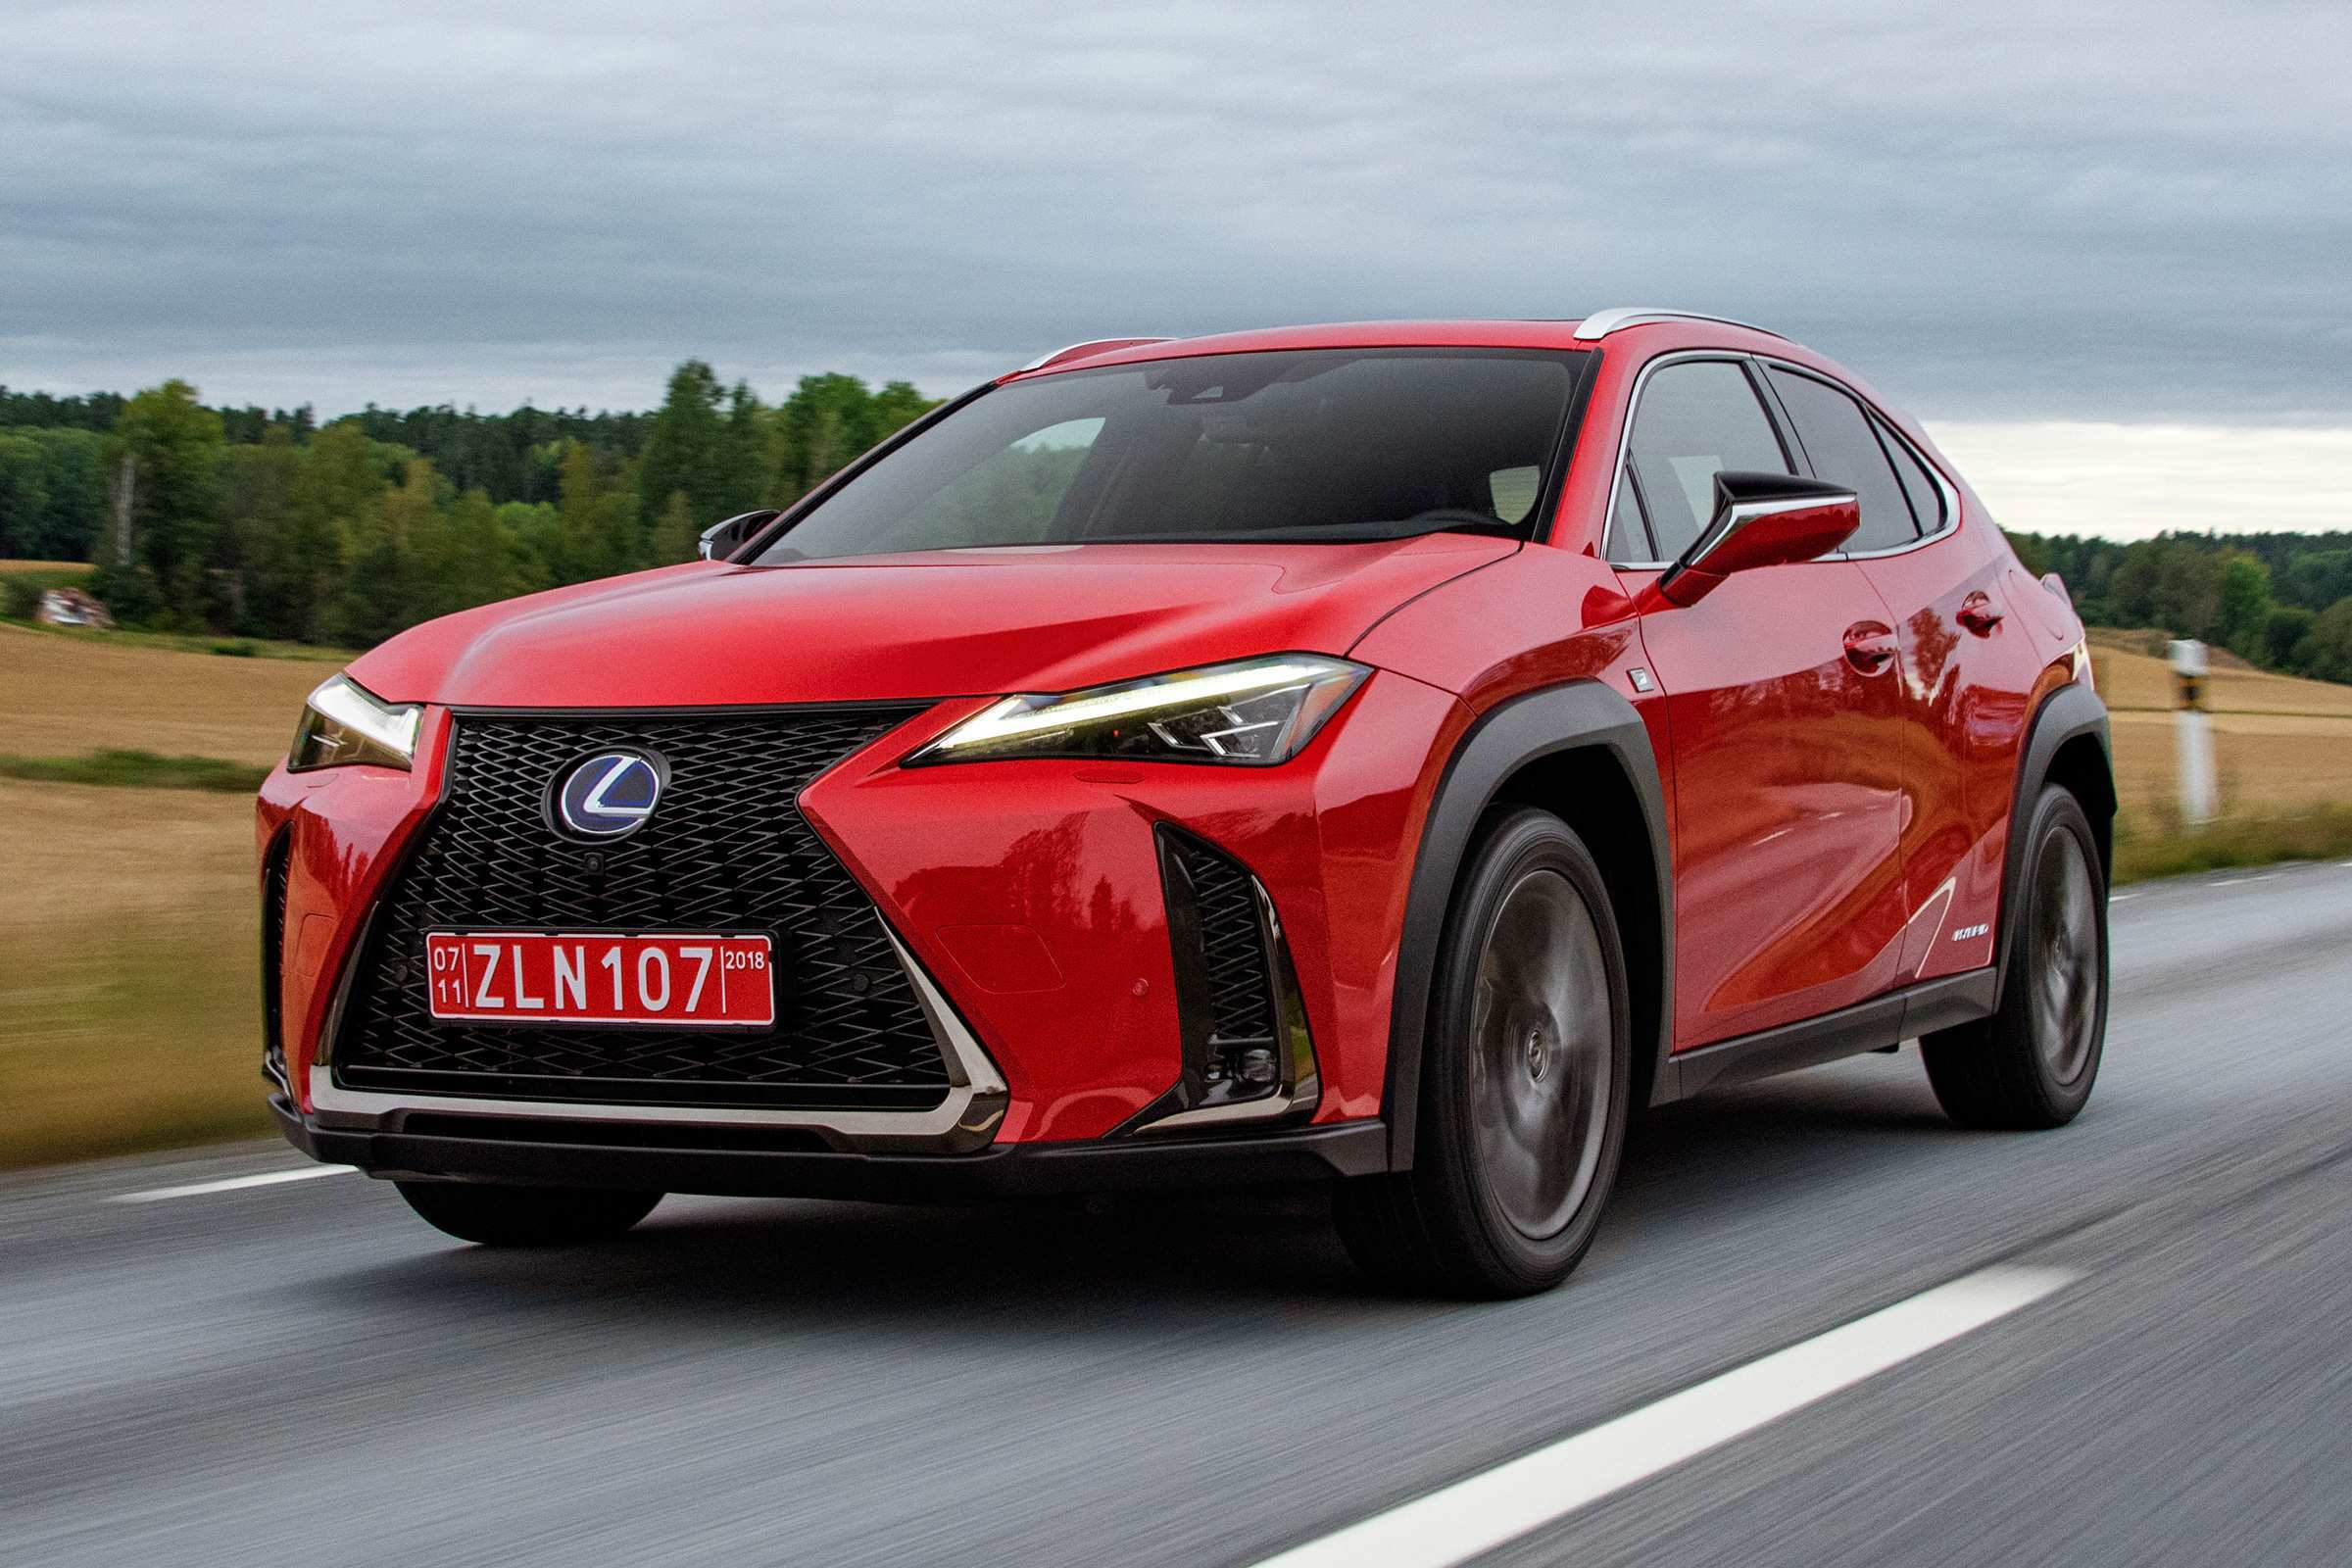 38 The Best Lexus Ux 2019 Price 2 Engine